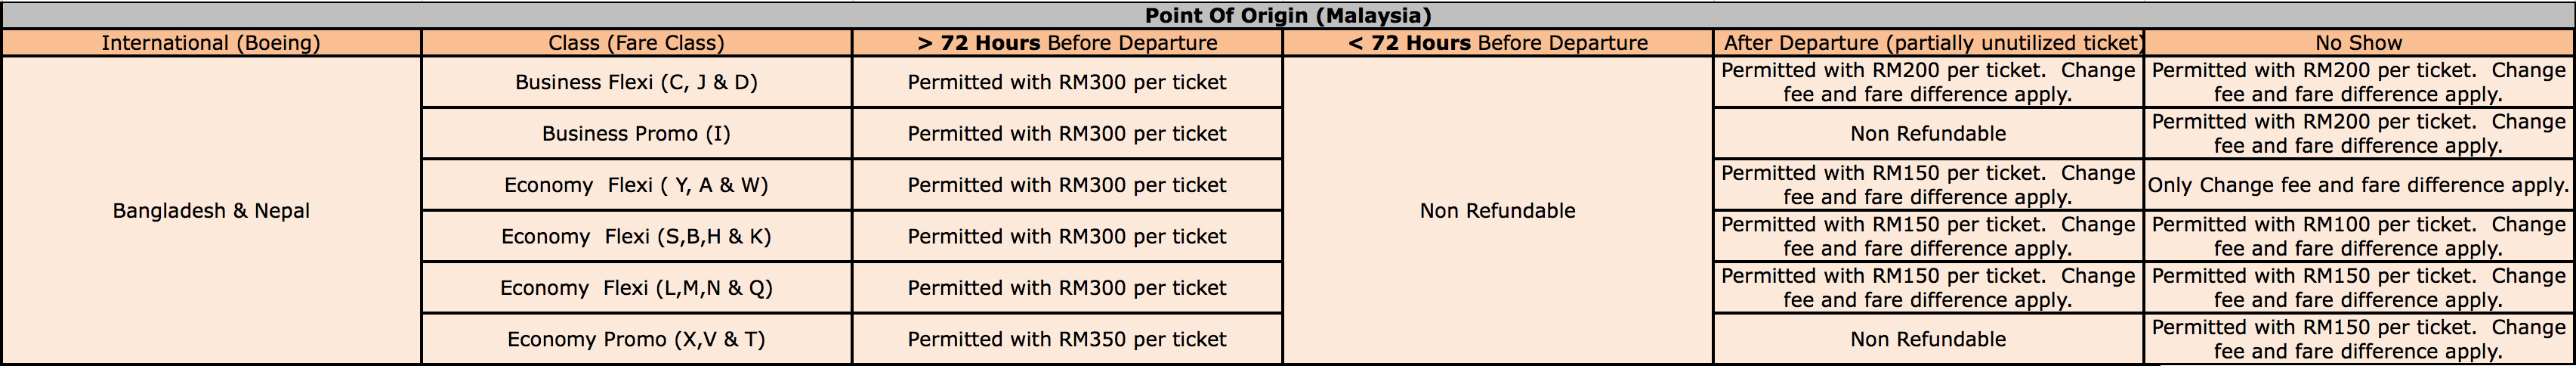 Tempat Jual Tiket Singapore Airlines Bisnis Class Terbaru 2018 Ramayana Nagita Slavina X Chapter 9 Blouse Angela 08009723 Cokelat L Cancellation Fees Outbound Kul To Bangladesh Nepal